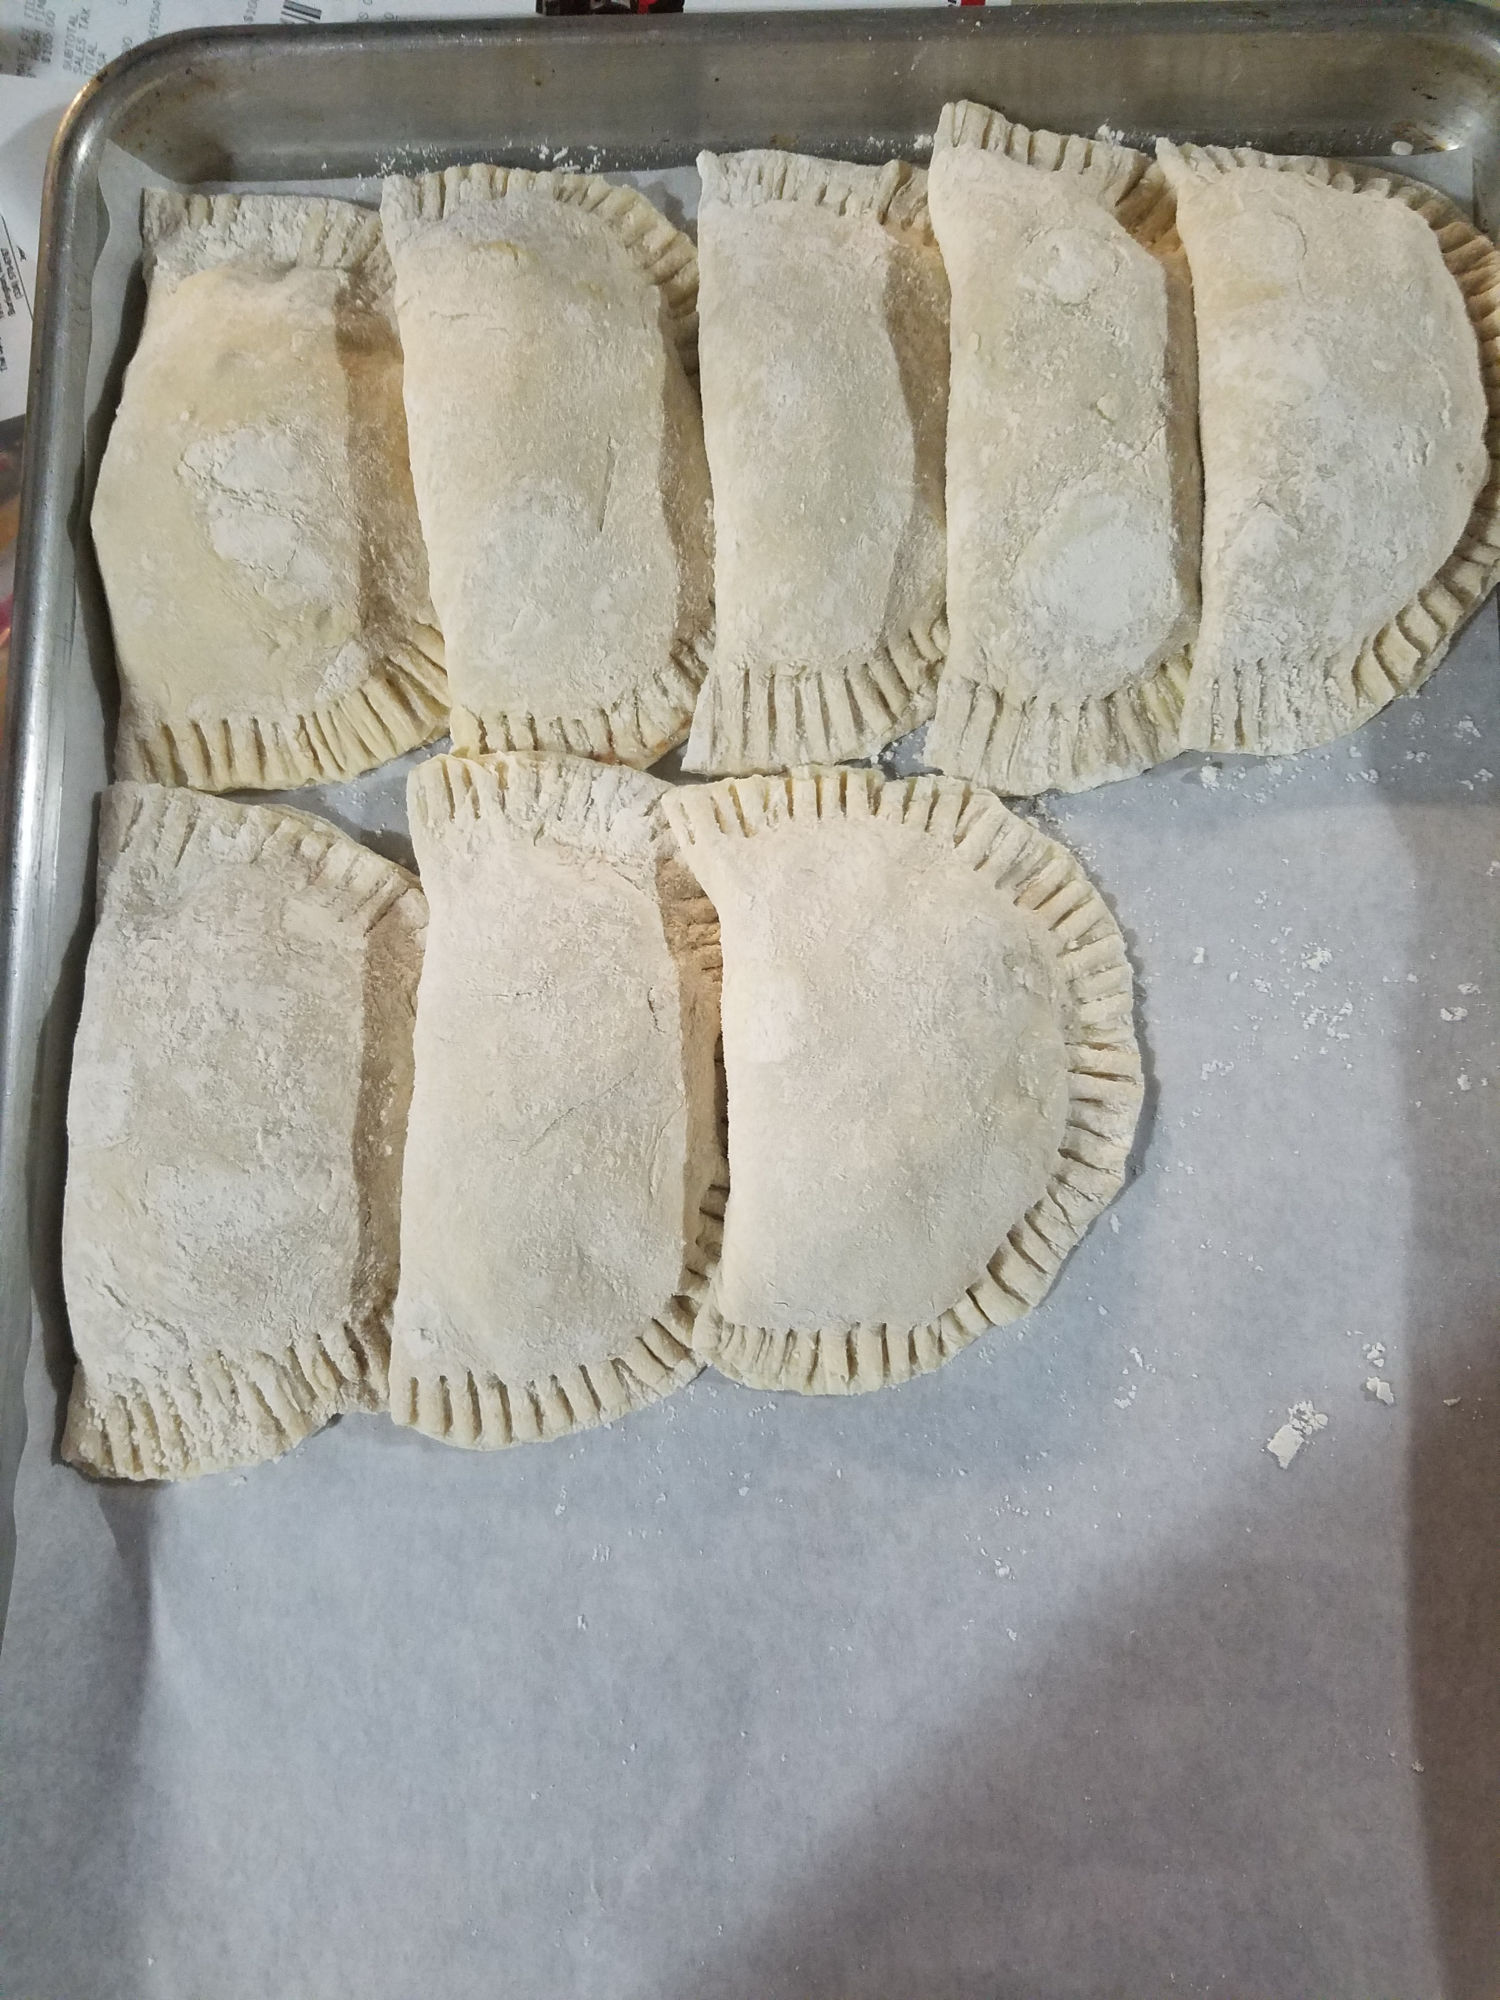 fried apple hand pies uncooked on a half sheet pan lined up against each other in three rows